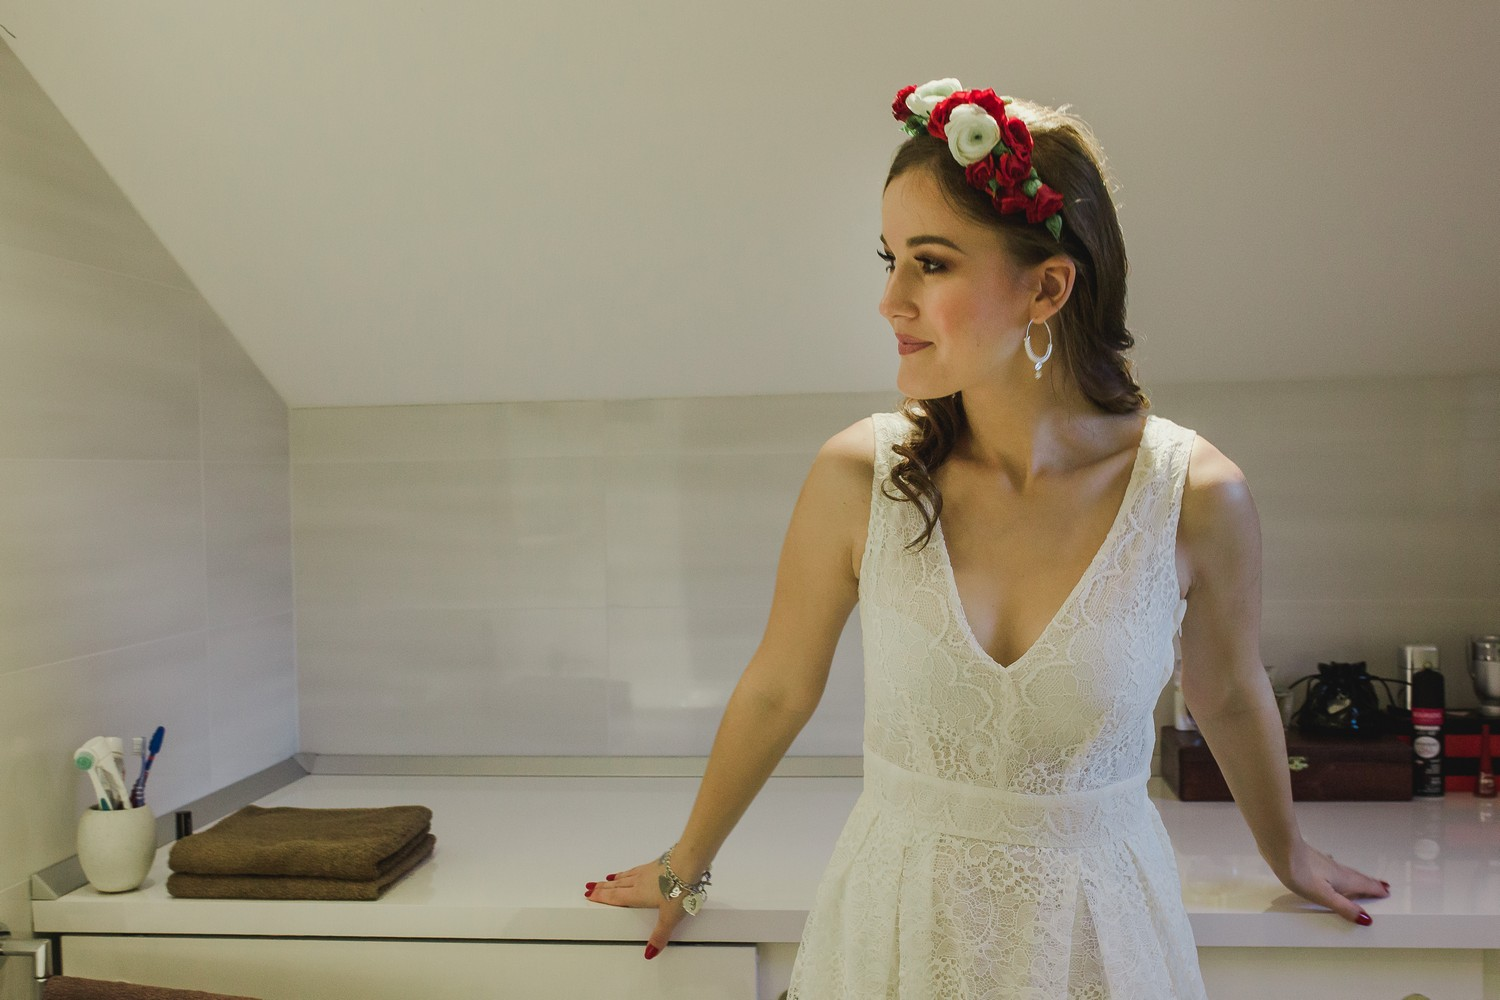 dubrovnik croatia wedding bride getting ready